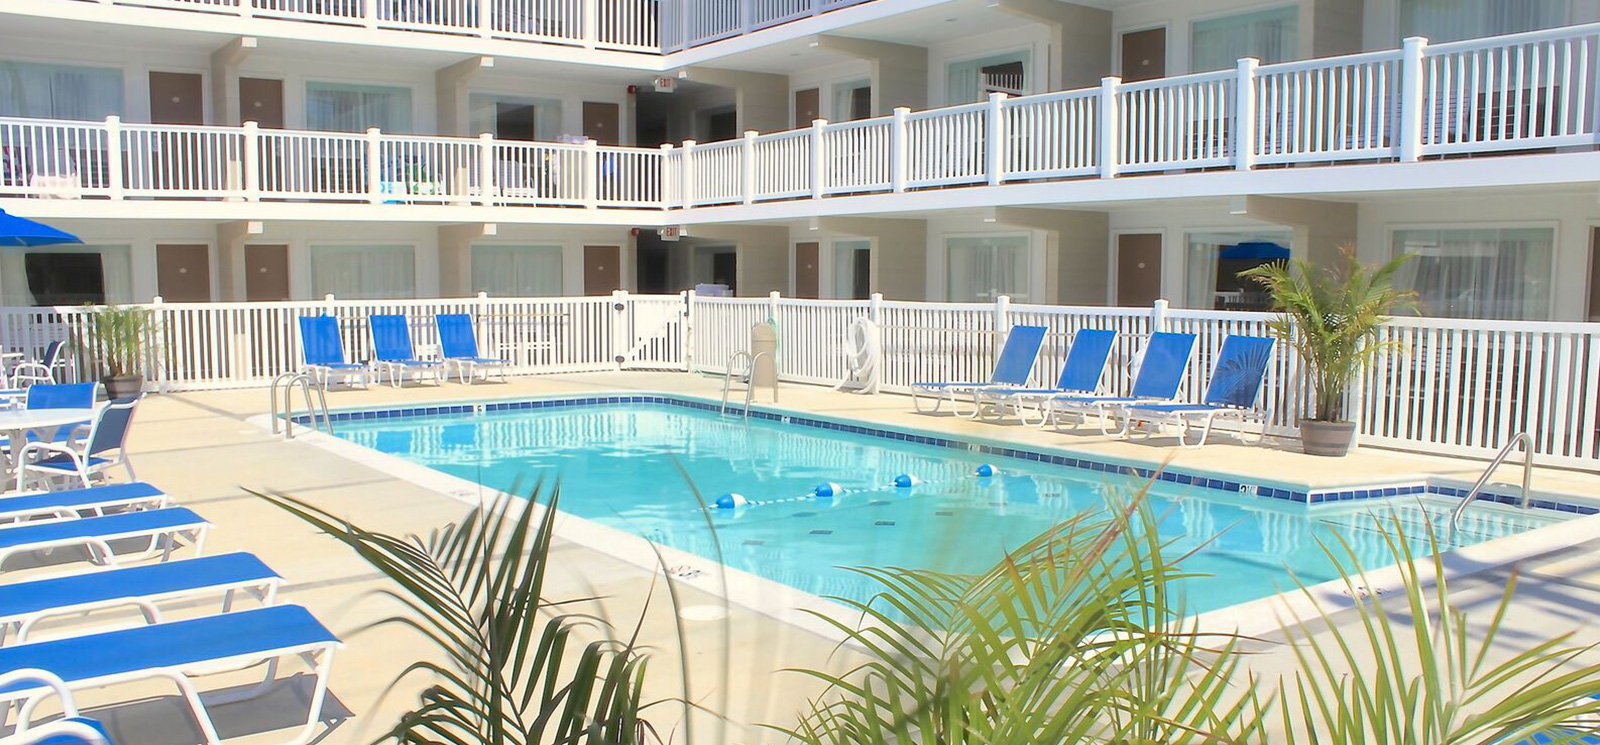 The Oceanus Amenities at Rehoboth Beach